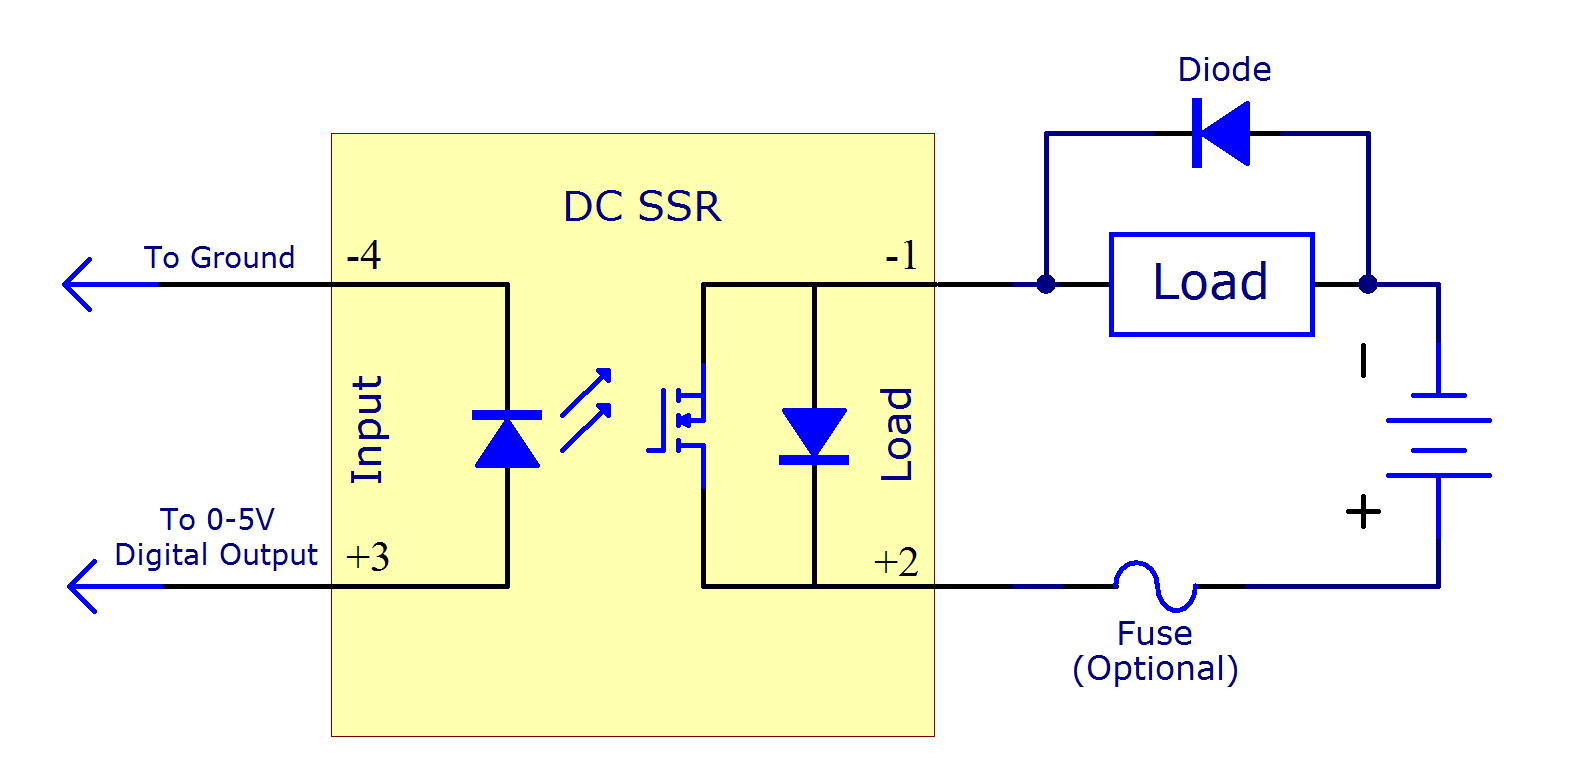 Ssr wiring diagram dc dc wiring diagram solid state relay primer phidgets support metro wiring diagram full size image the electrical isolation built cheapraybanclubmaster Images